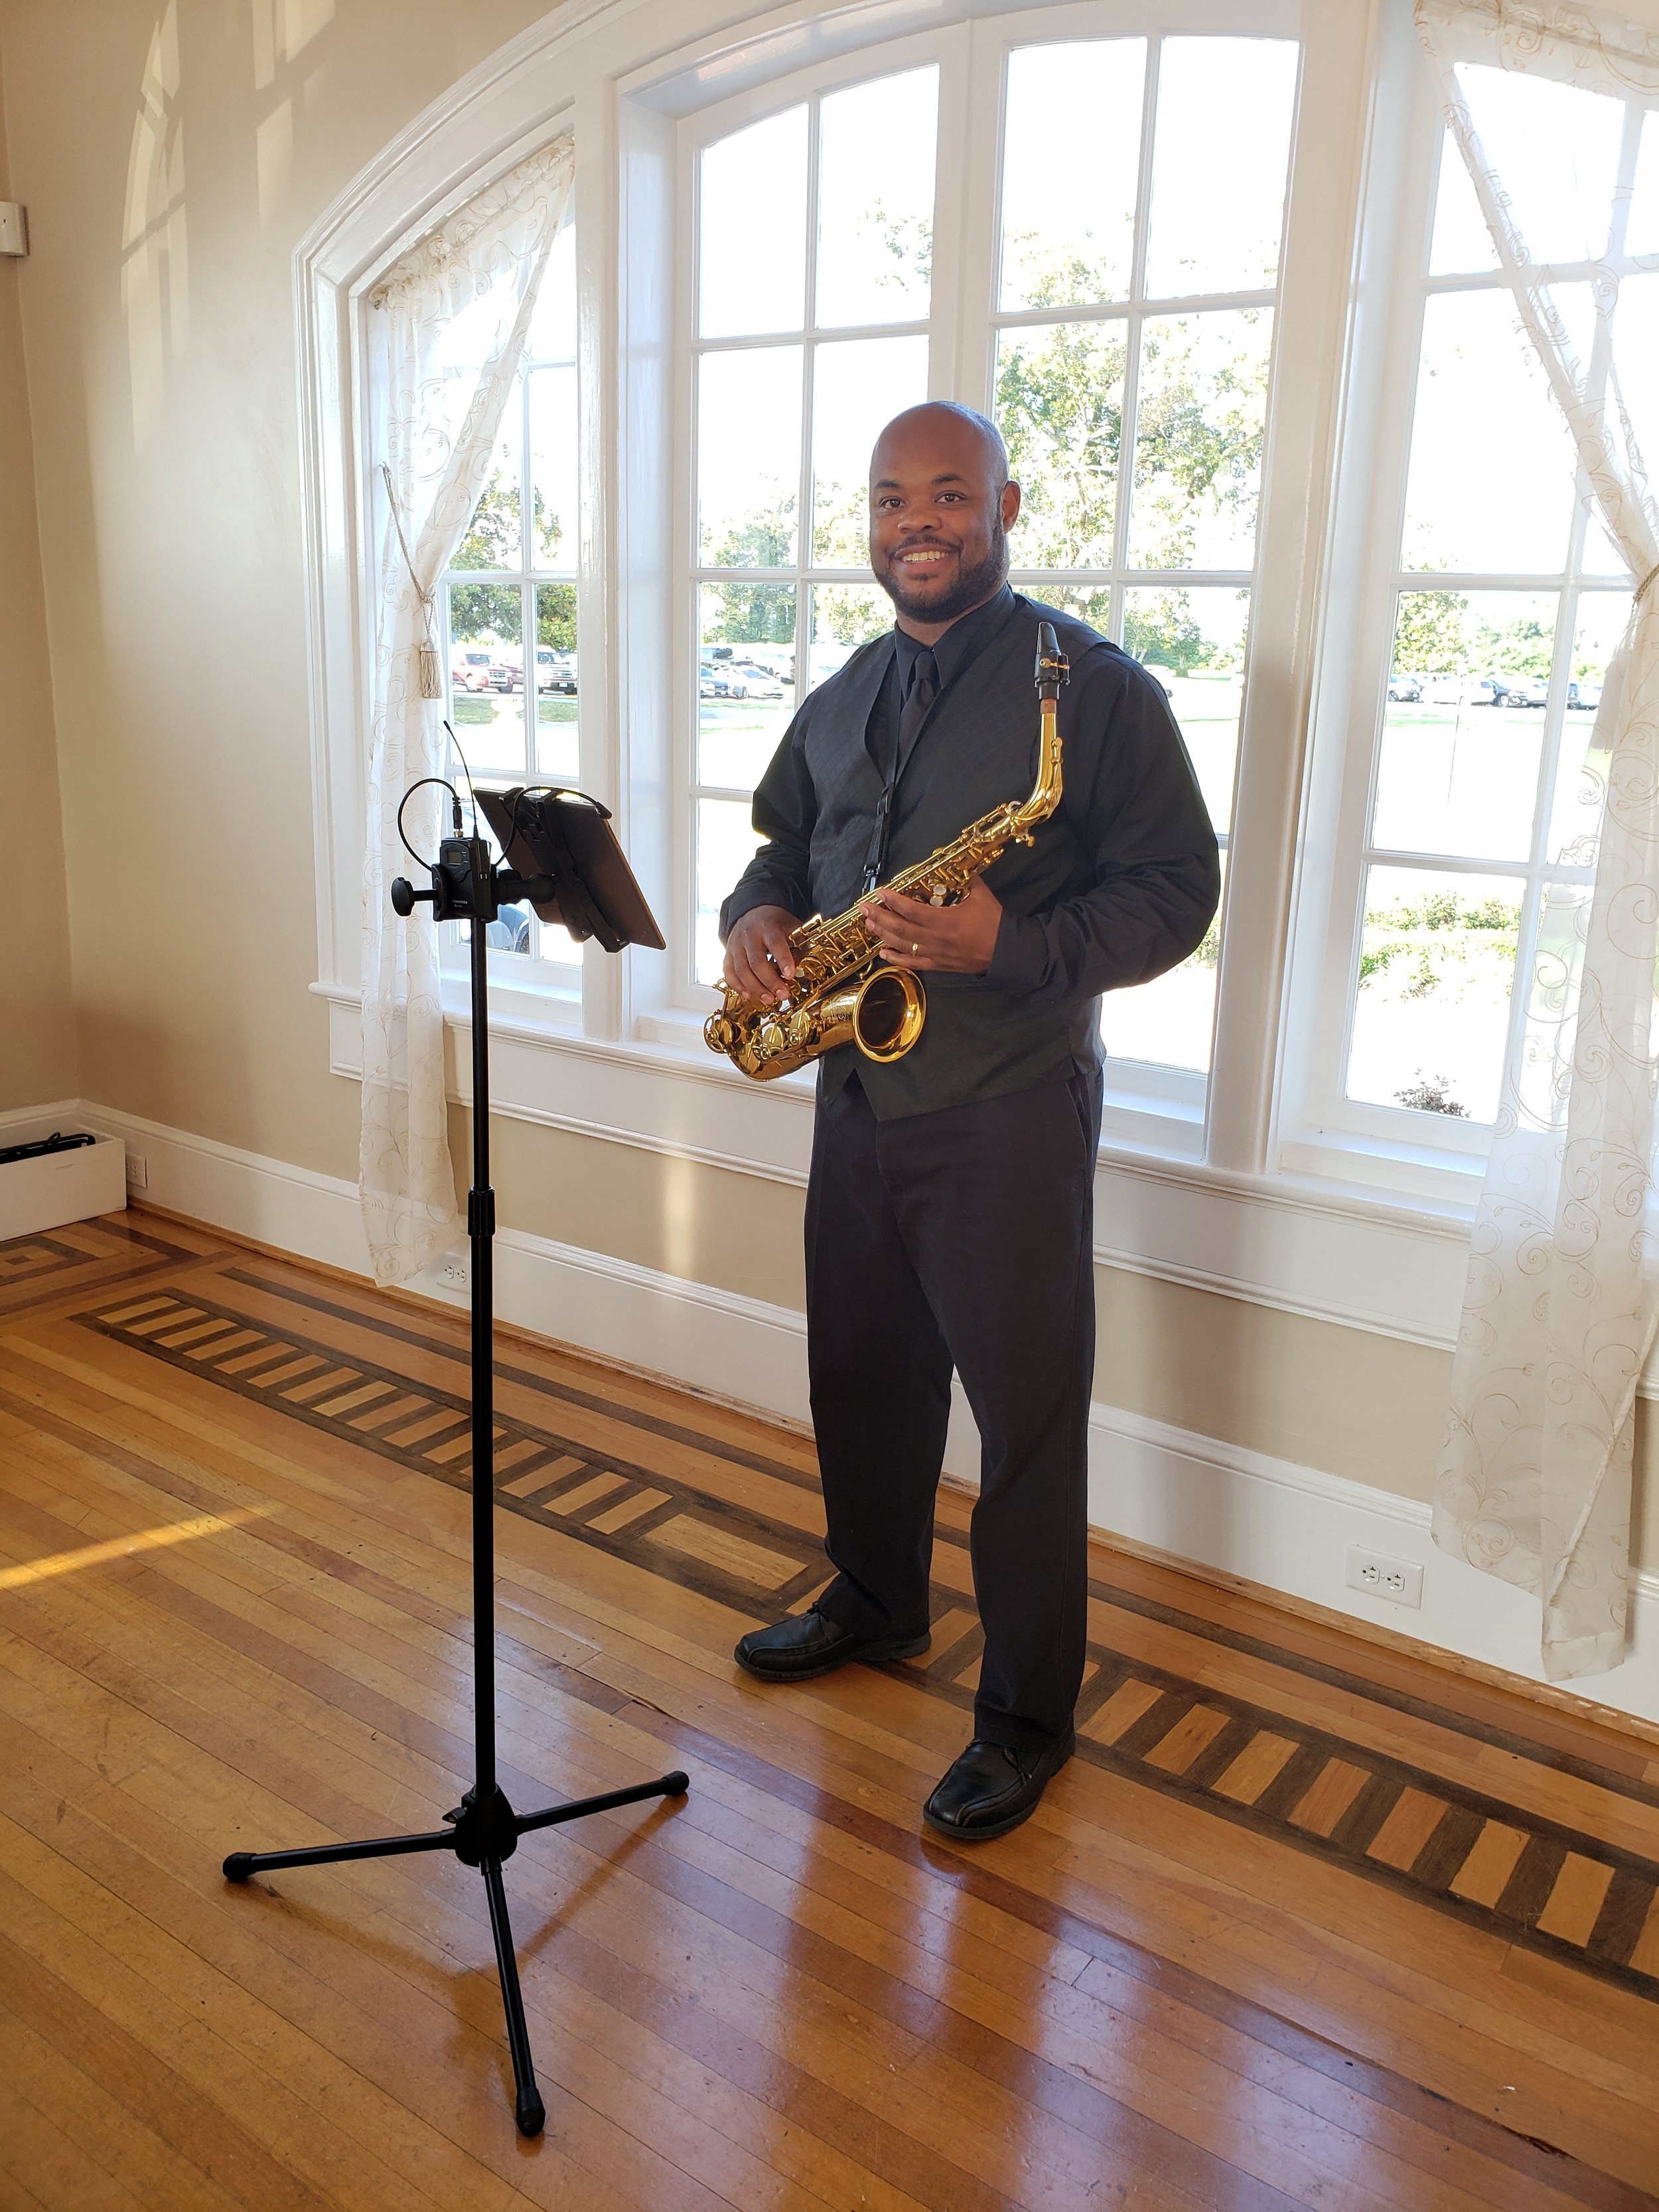 Ezra is a trained musician and regularly works together with other professional instrumentalists as requested.